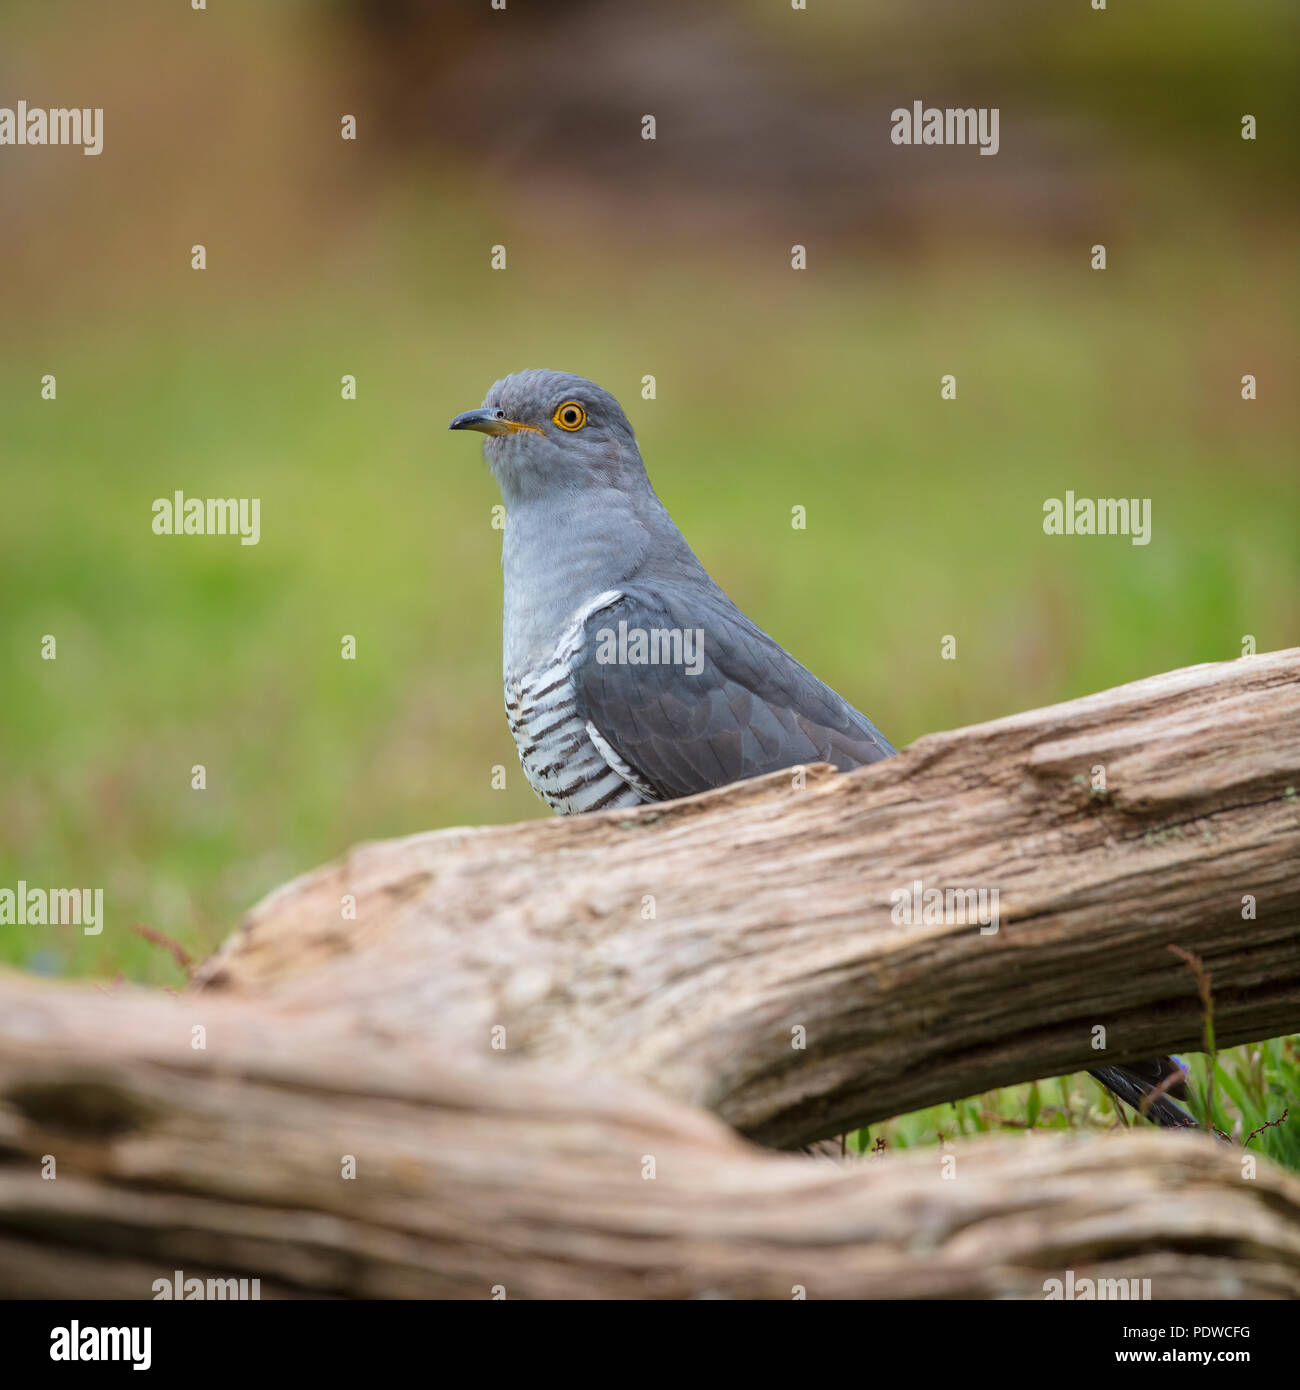 Cuckoo perching on some fallen wood - Stock Image